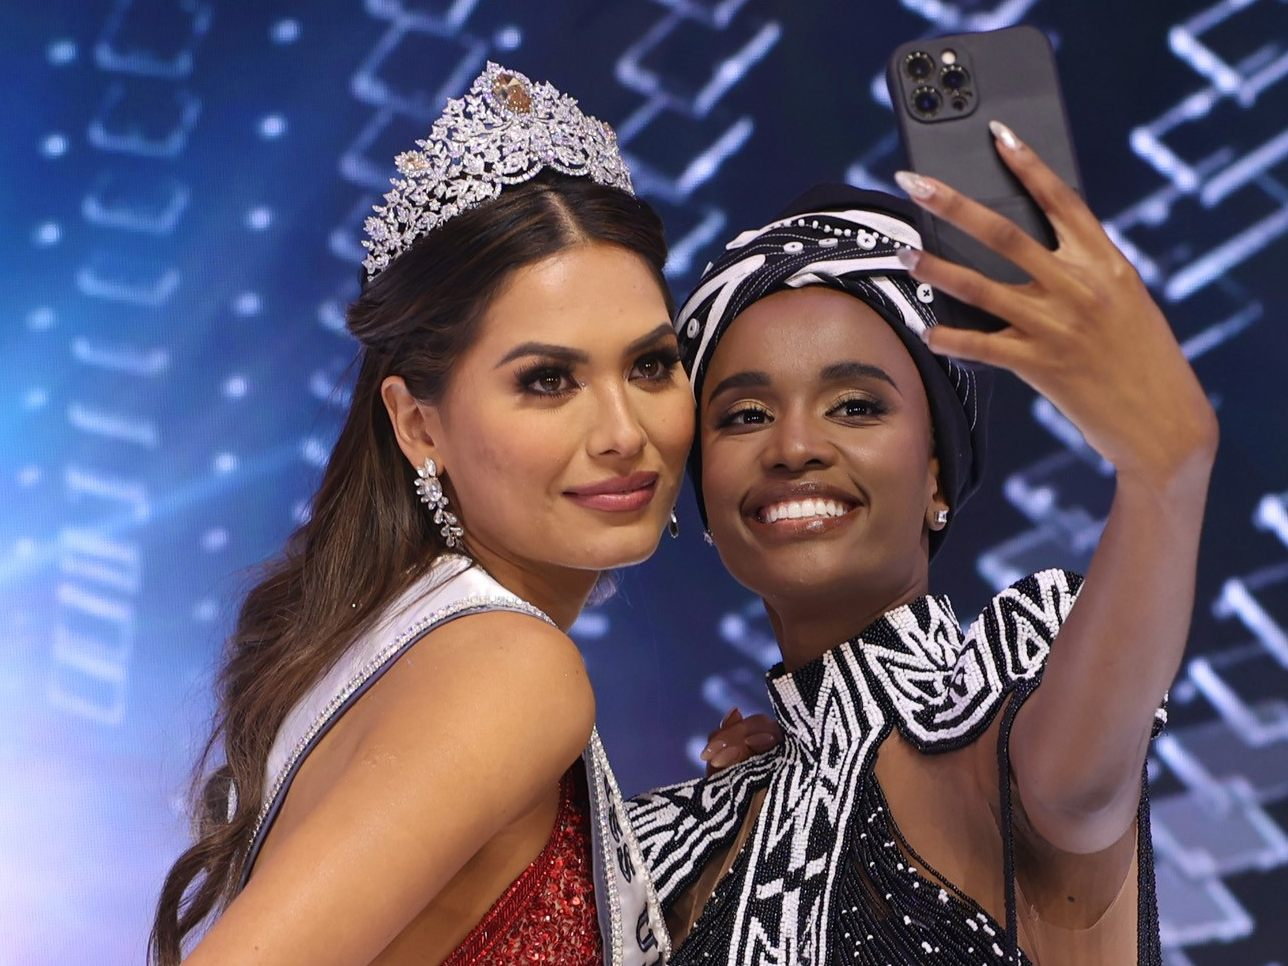 Miss Universe 2021 kommt aus Mexiko - Sexy national -- VOL.AT